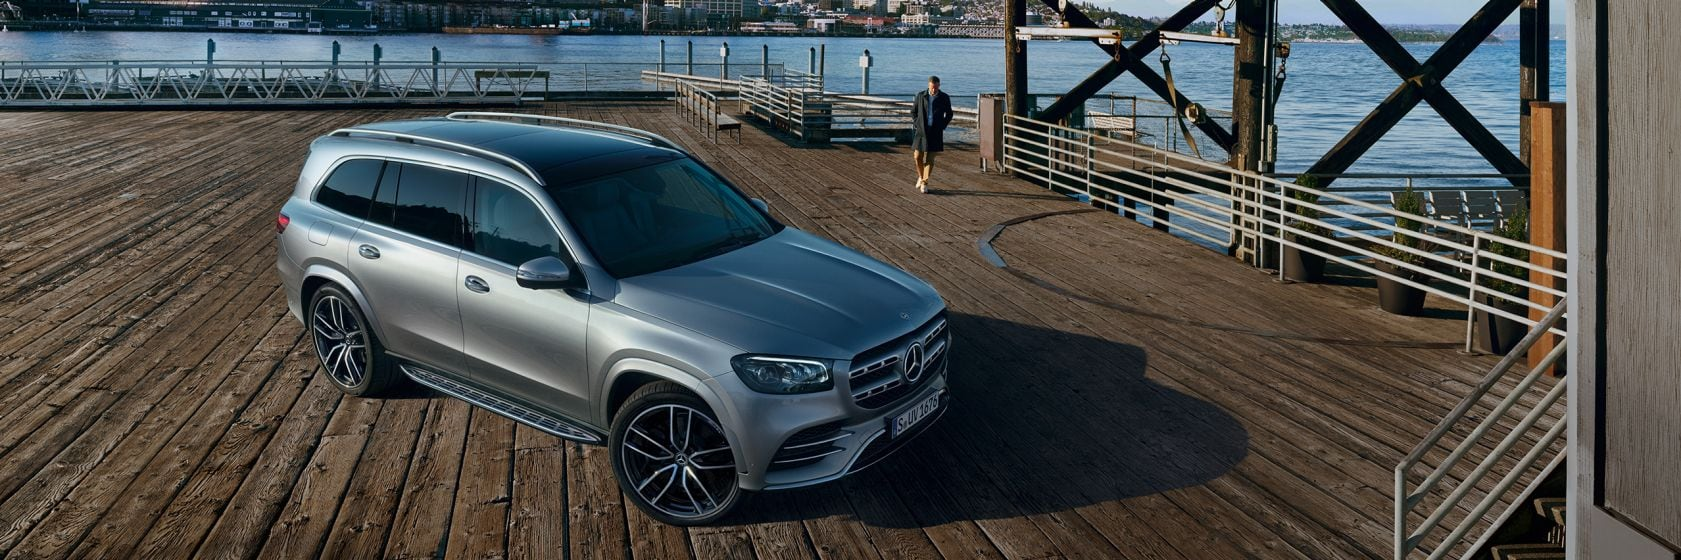 Заказ Нового Mercedes-Benz GLS 2019